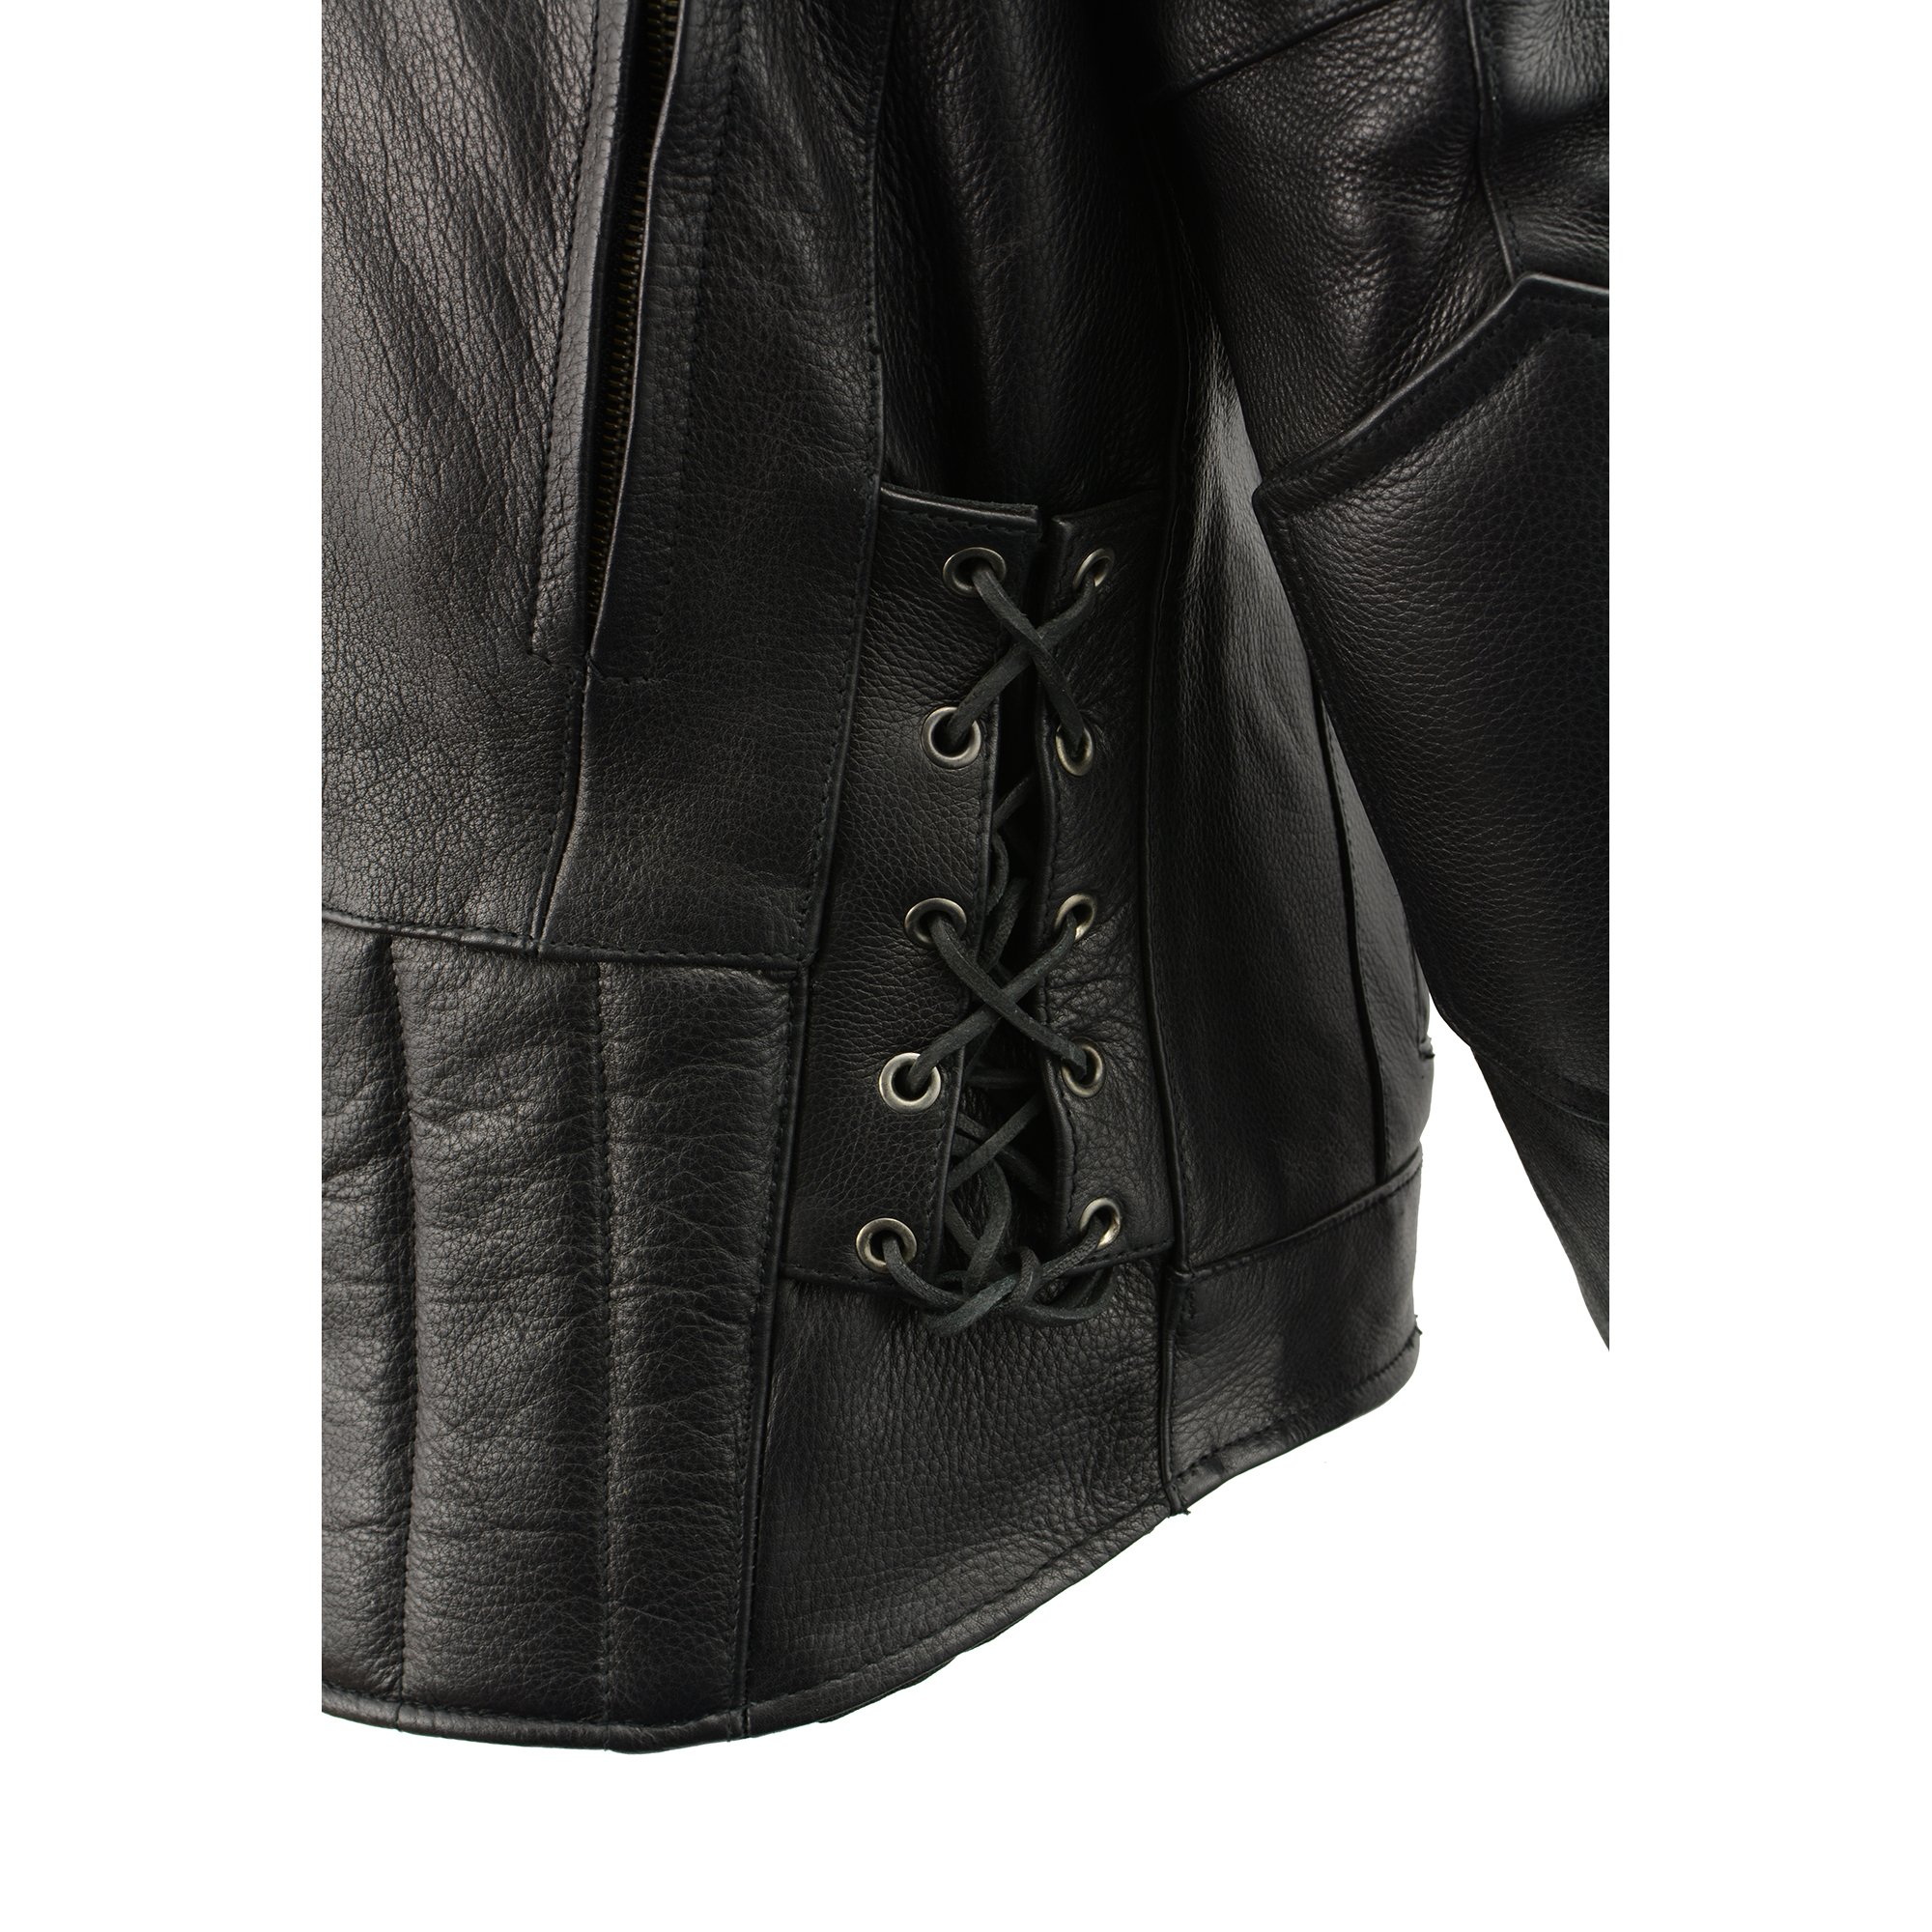 Milwaukee Leather Men's Side Lace Vented Scooter Jacket (Black, 5X-LargeTall) by Milwaukee Leather (Image #12)